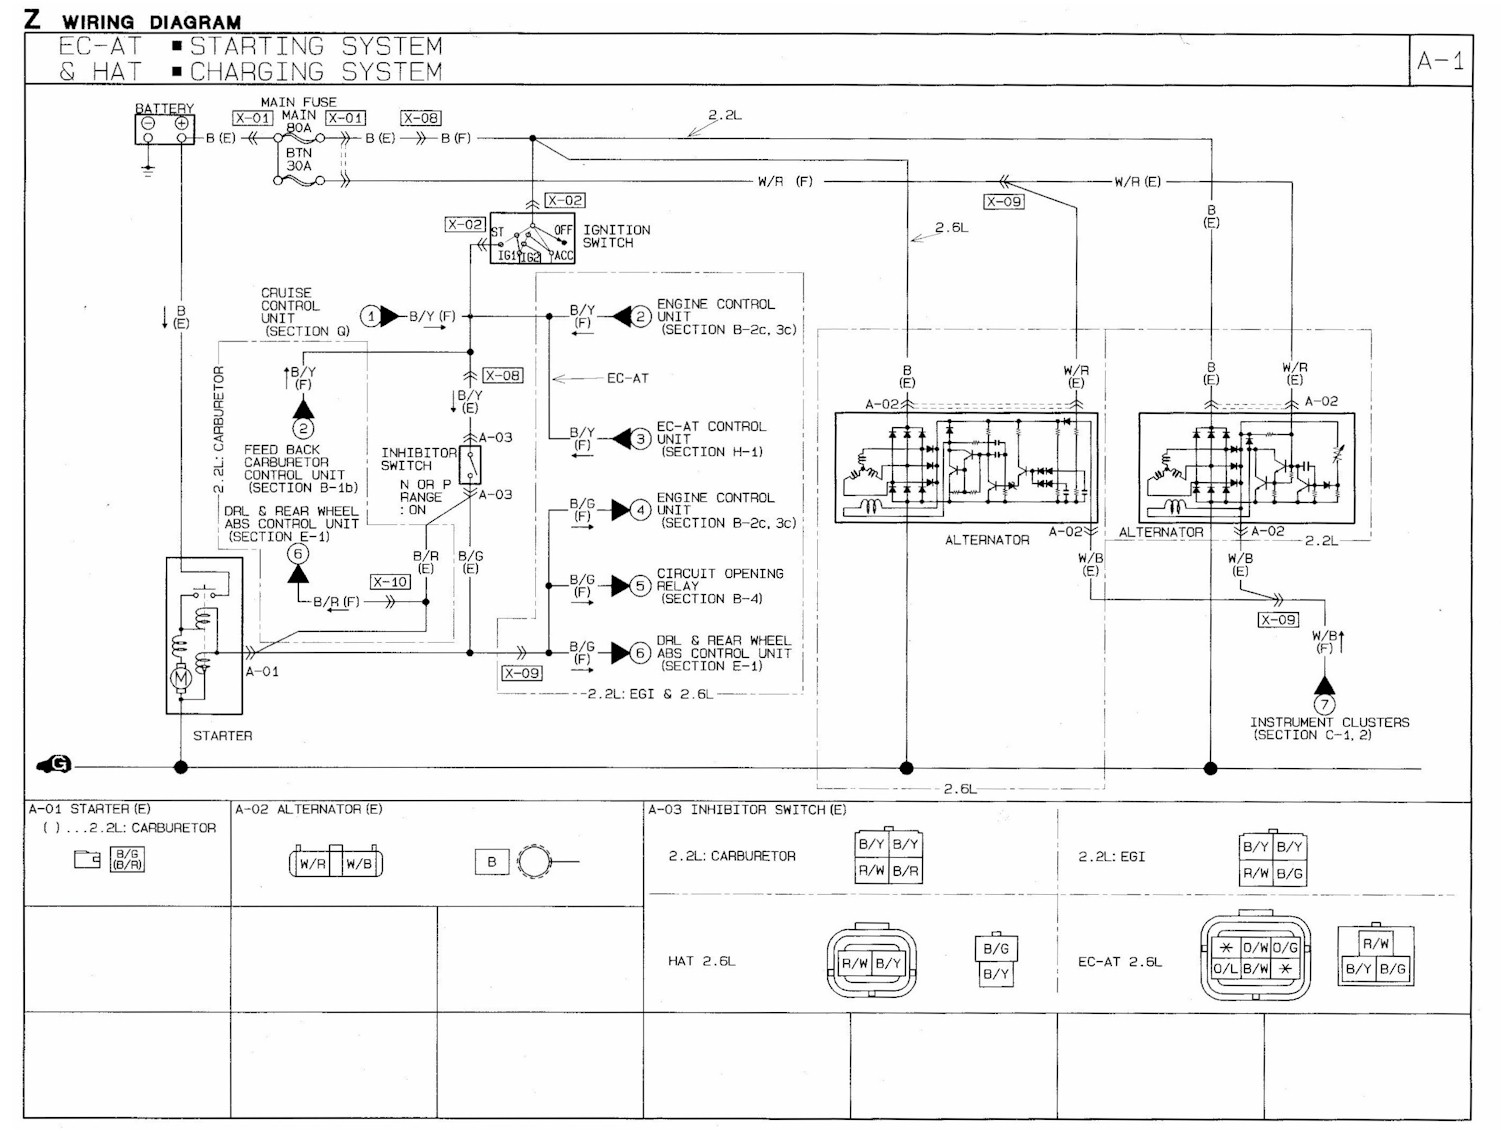 1987 mazda b2600 wiring diagram free picture - wiring ddiagrams home  manager-normal - manager-normal.brixiaproart.it  brixia pro art